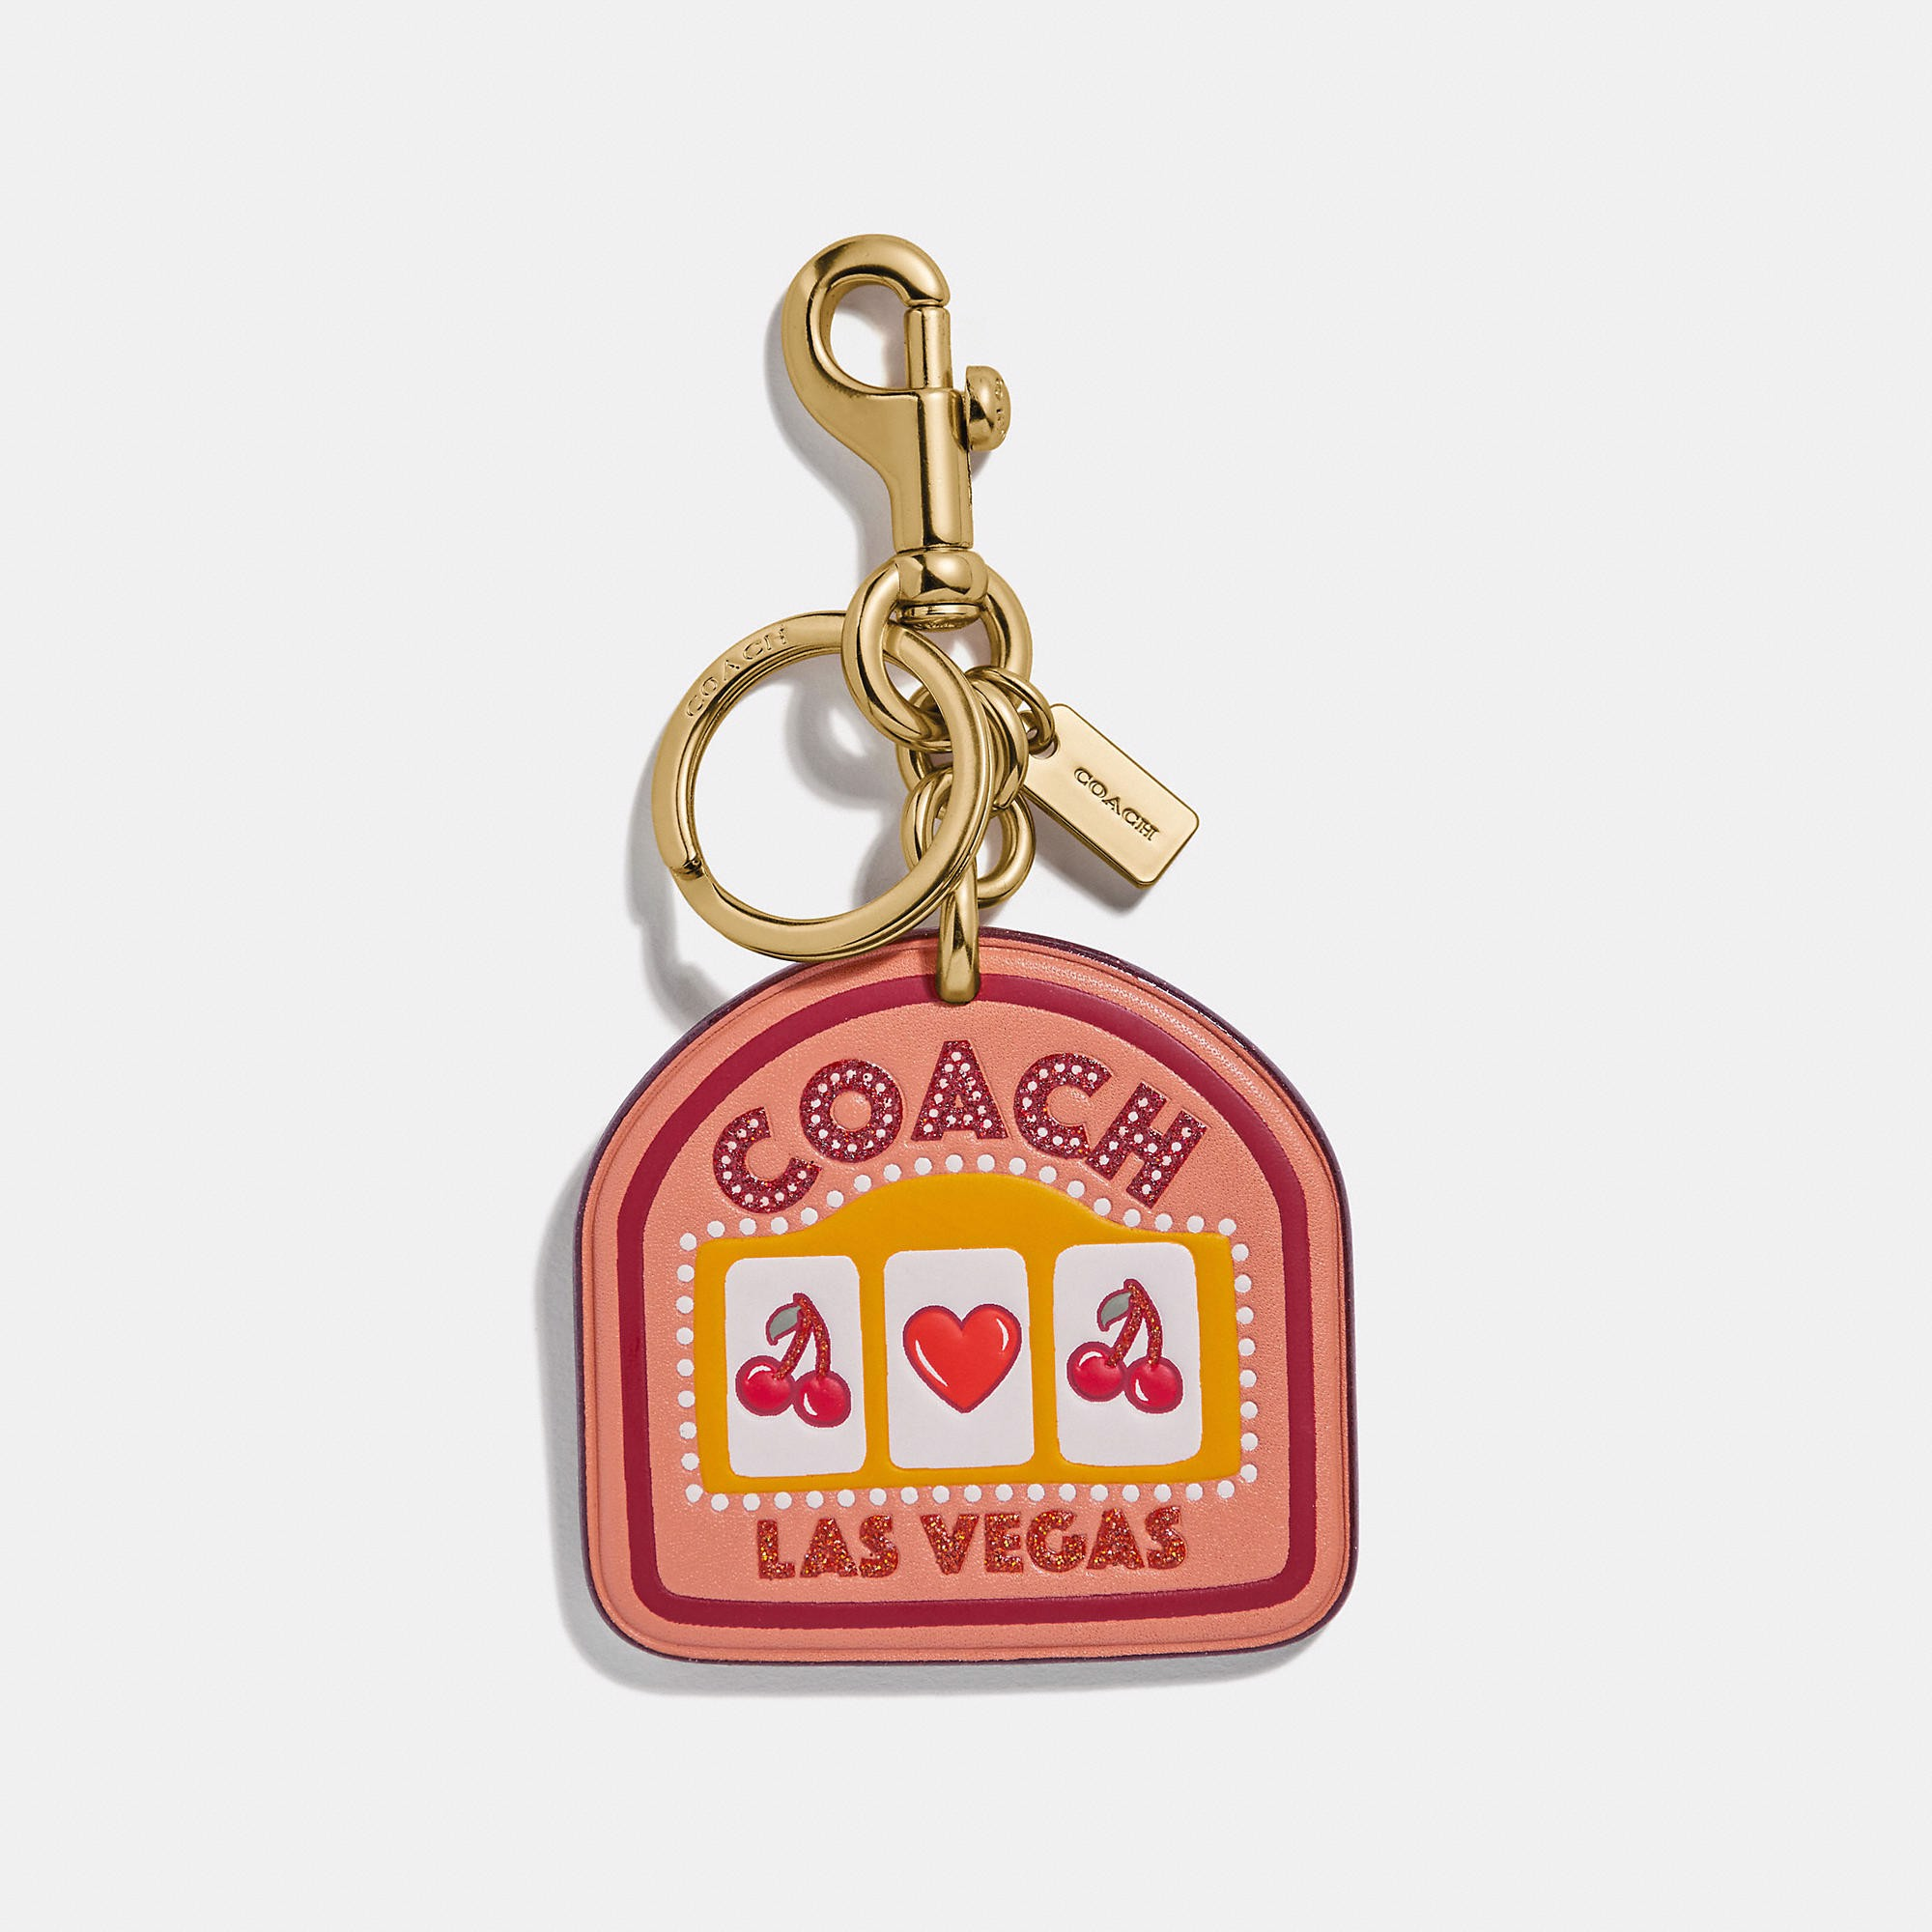 Coach Las Vegas Bag Charm